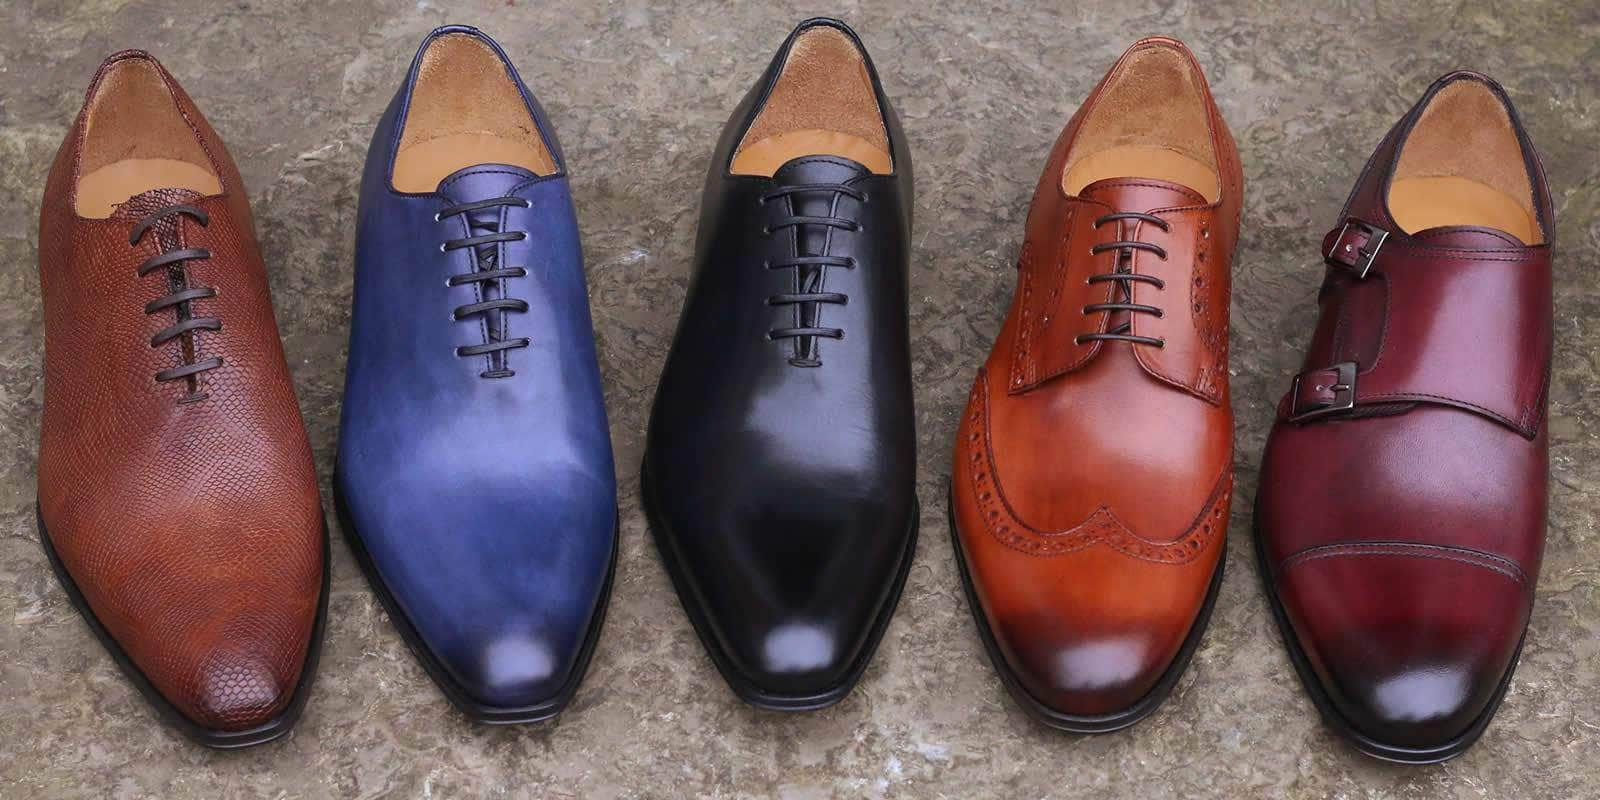 What makes Italian shoes so good?